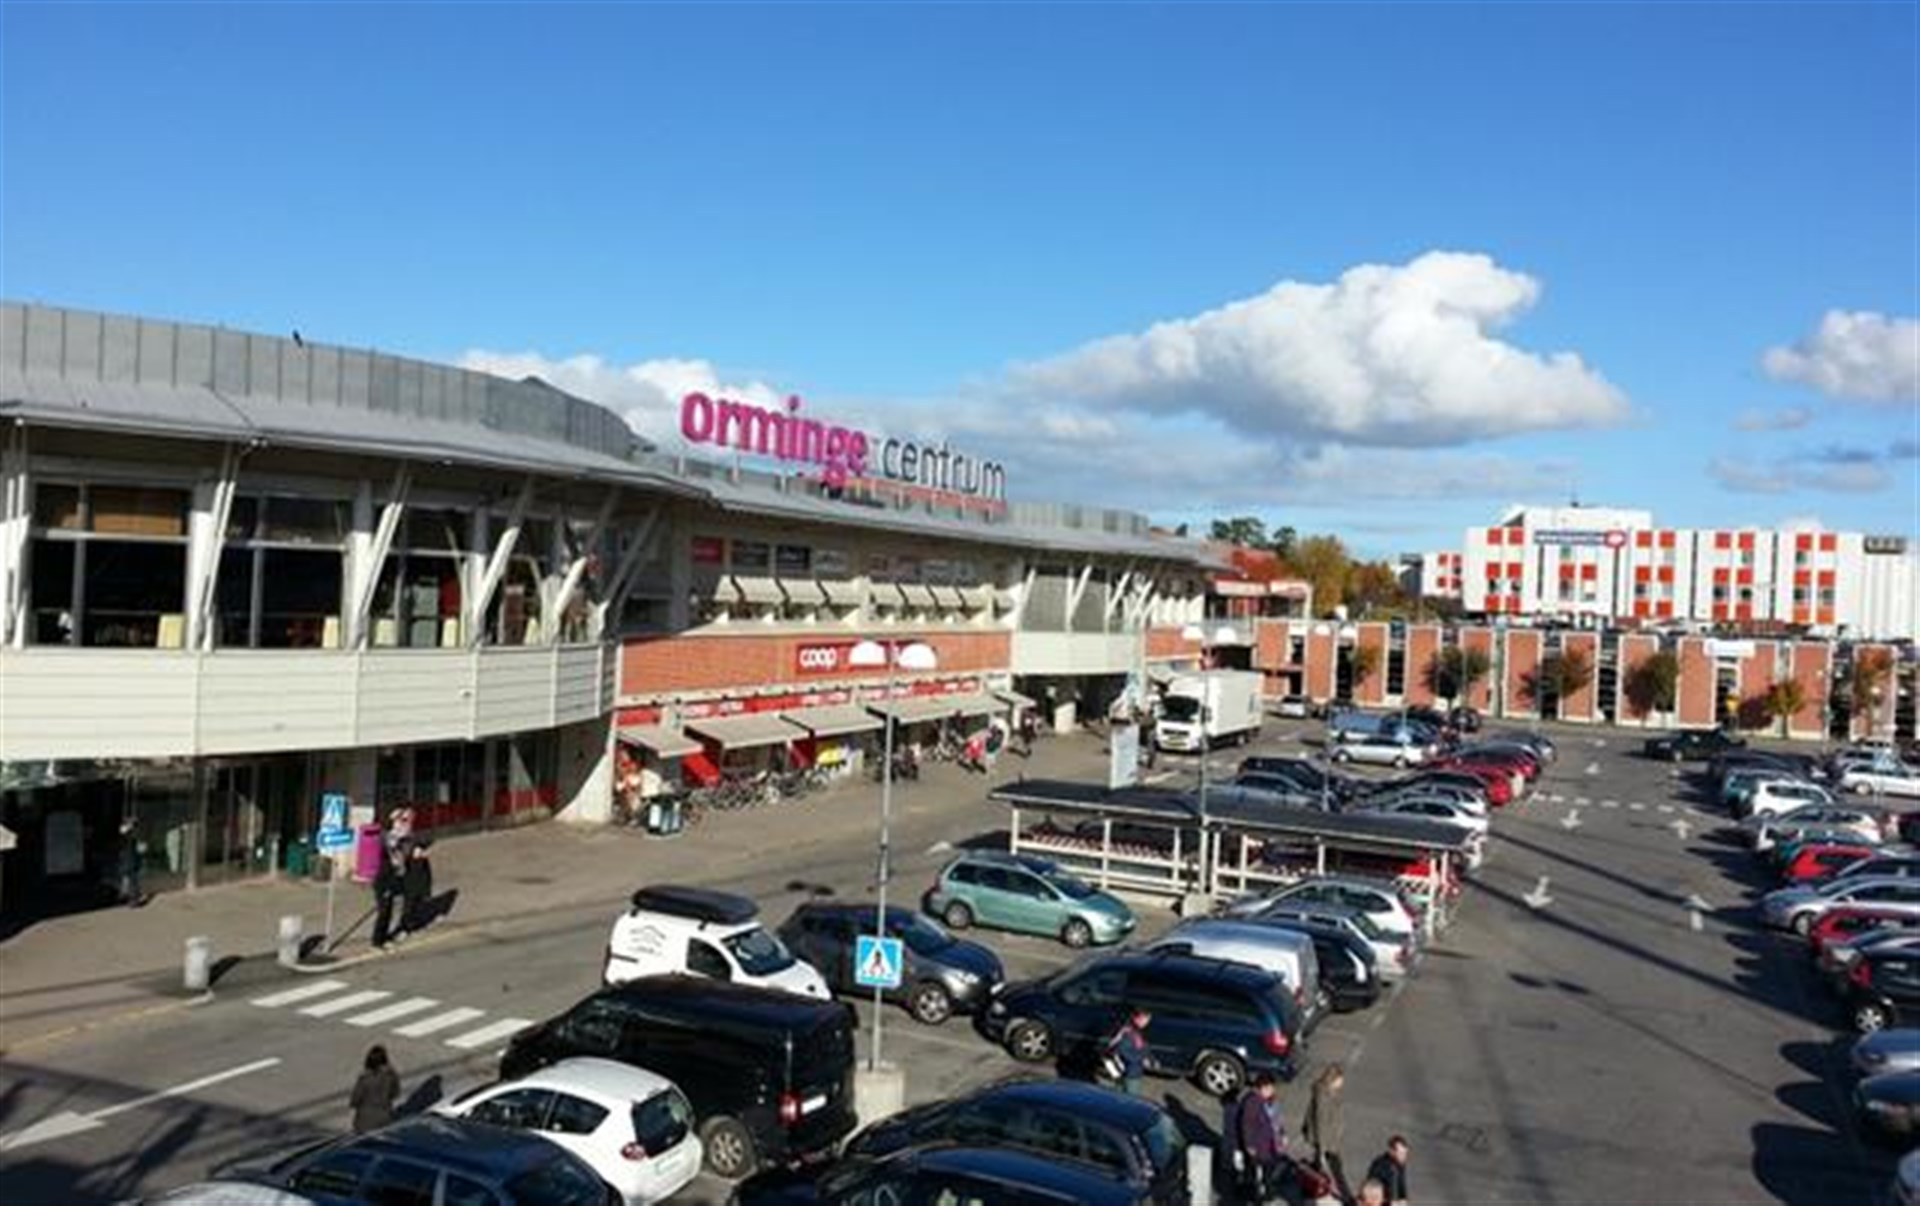 Orminge Centrum